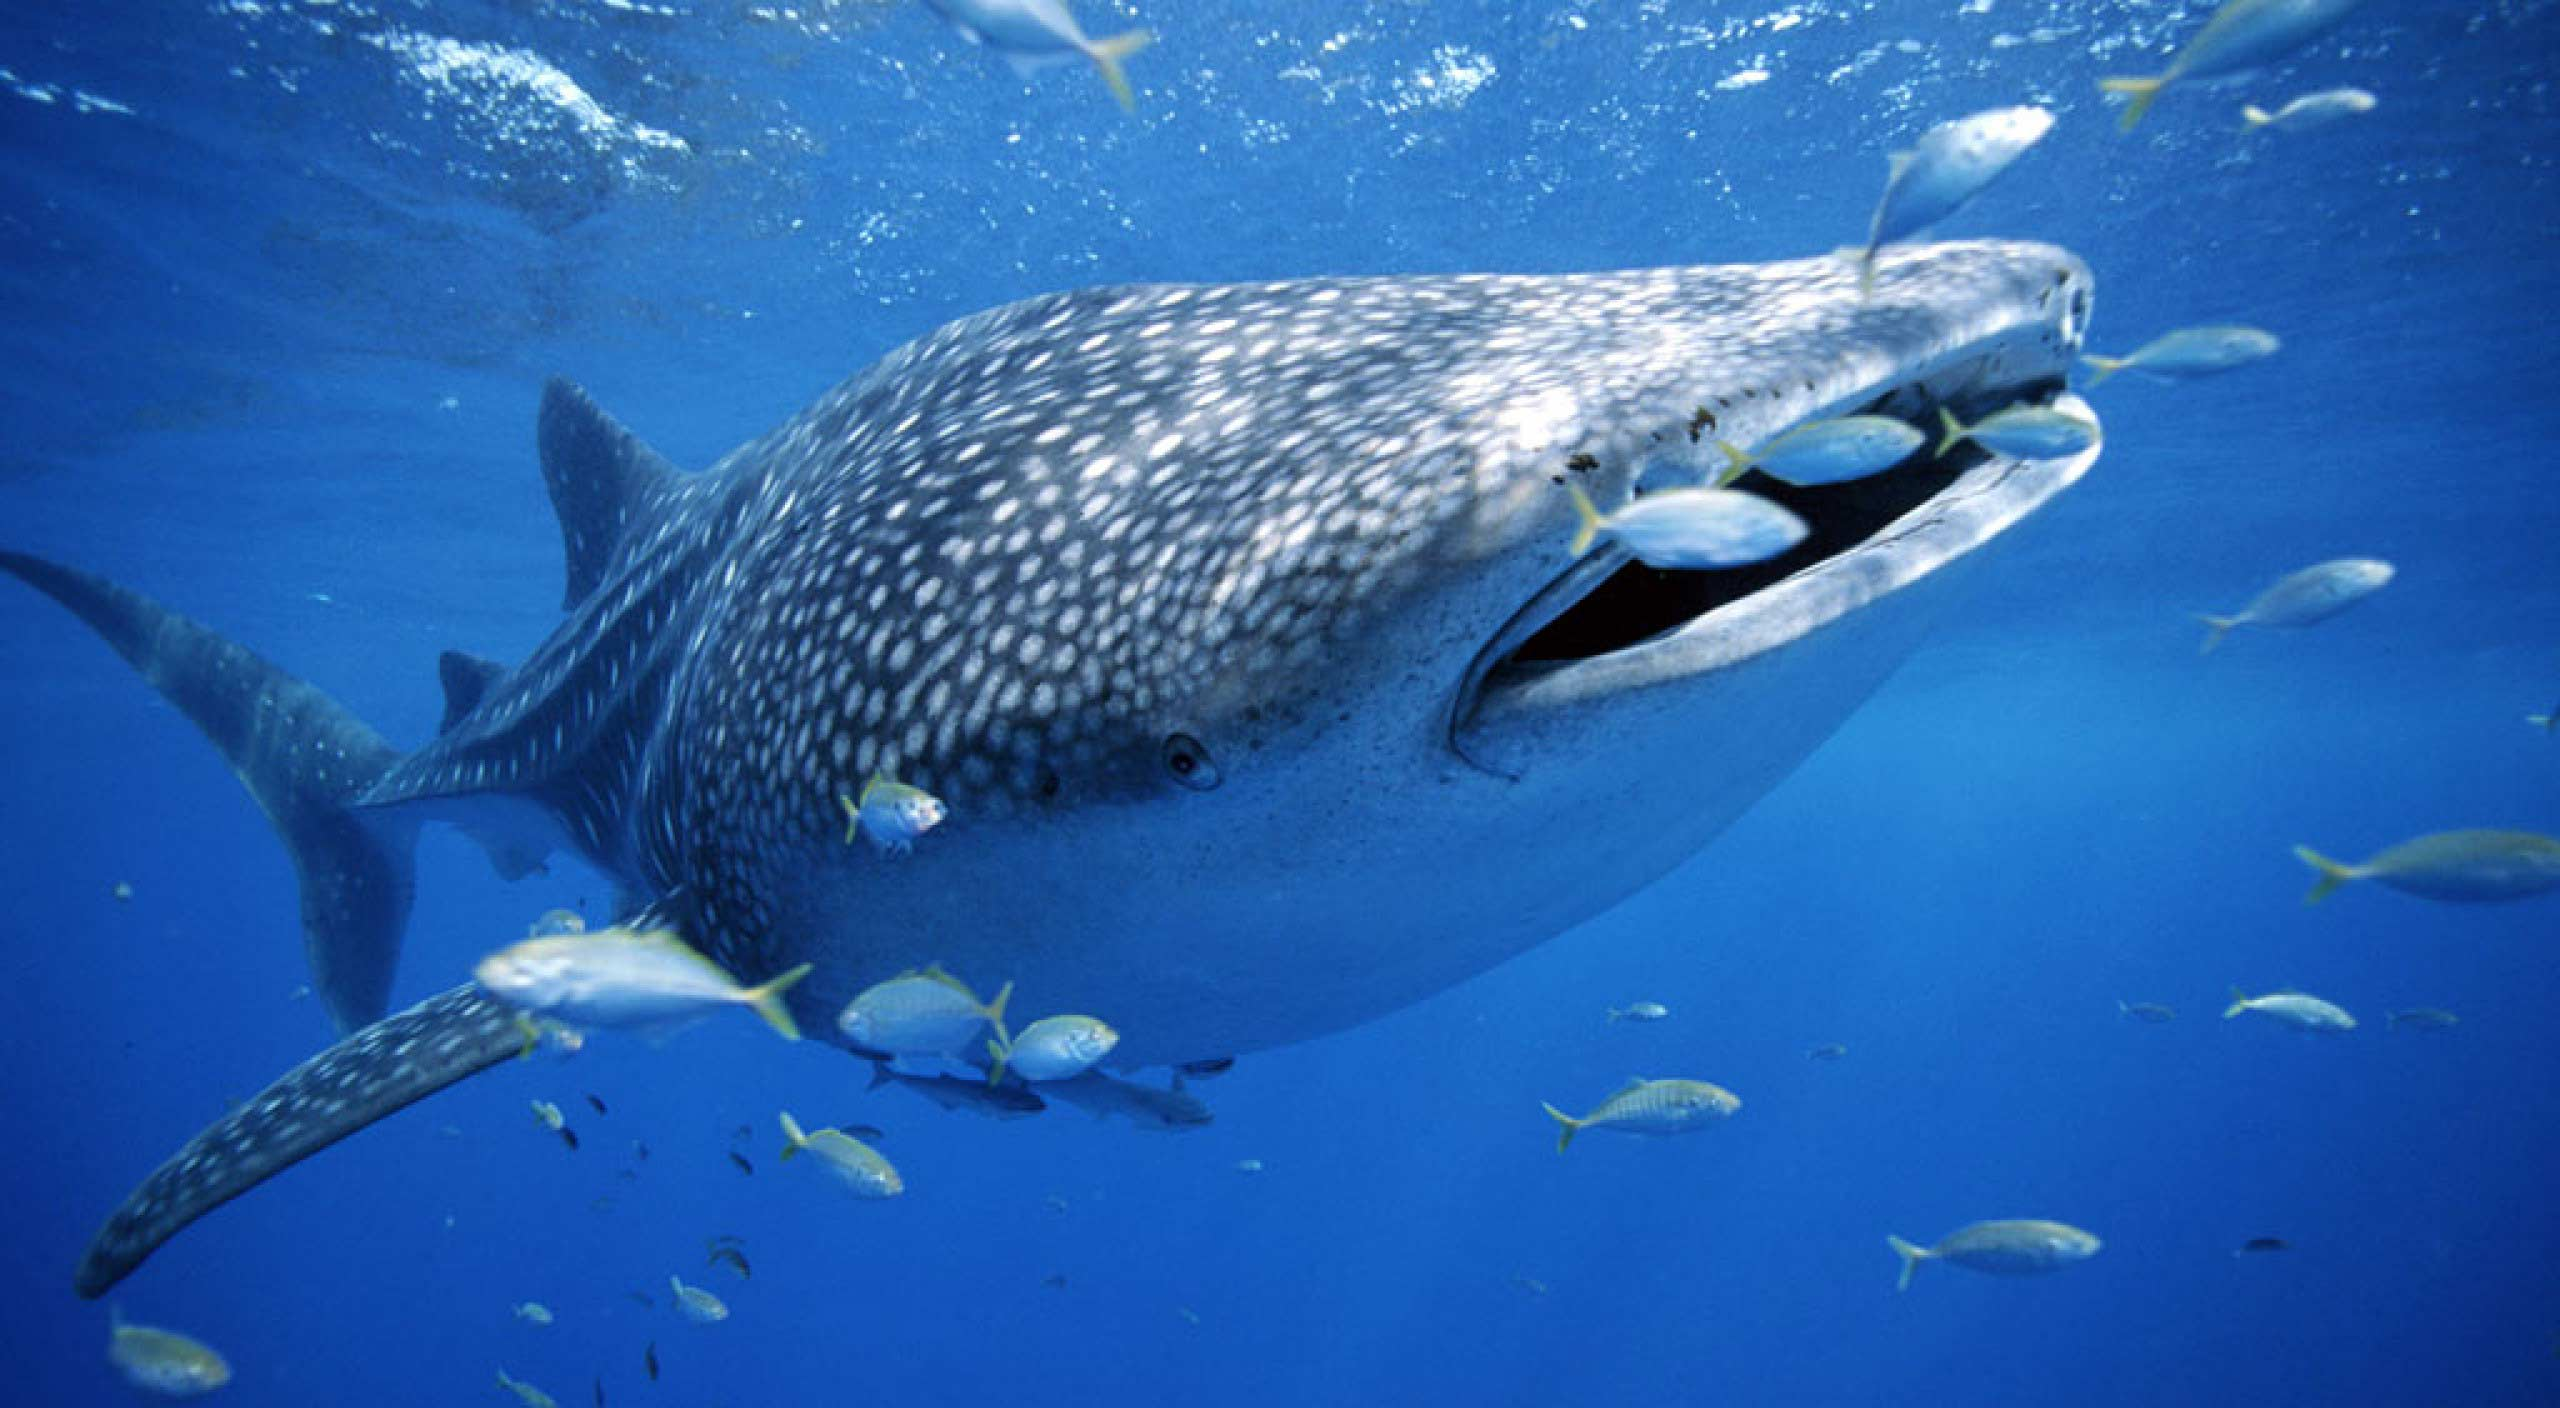 World class dive destinations - Whale Shark encounters